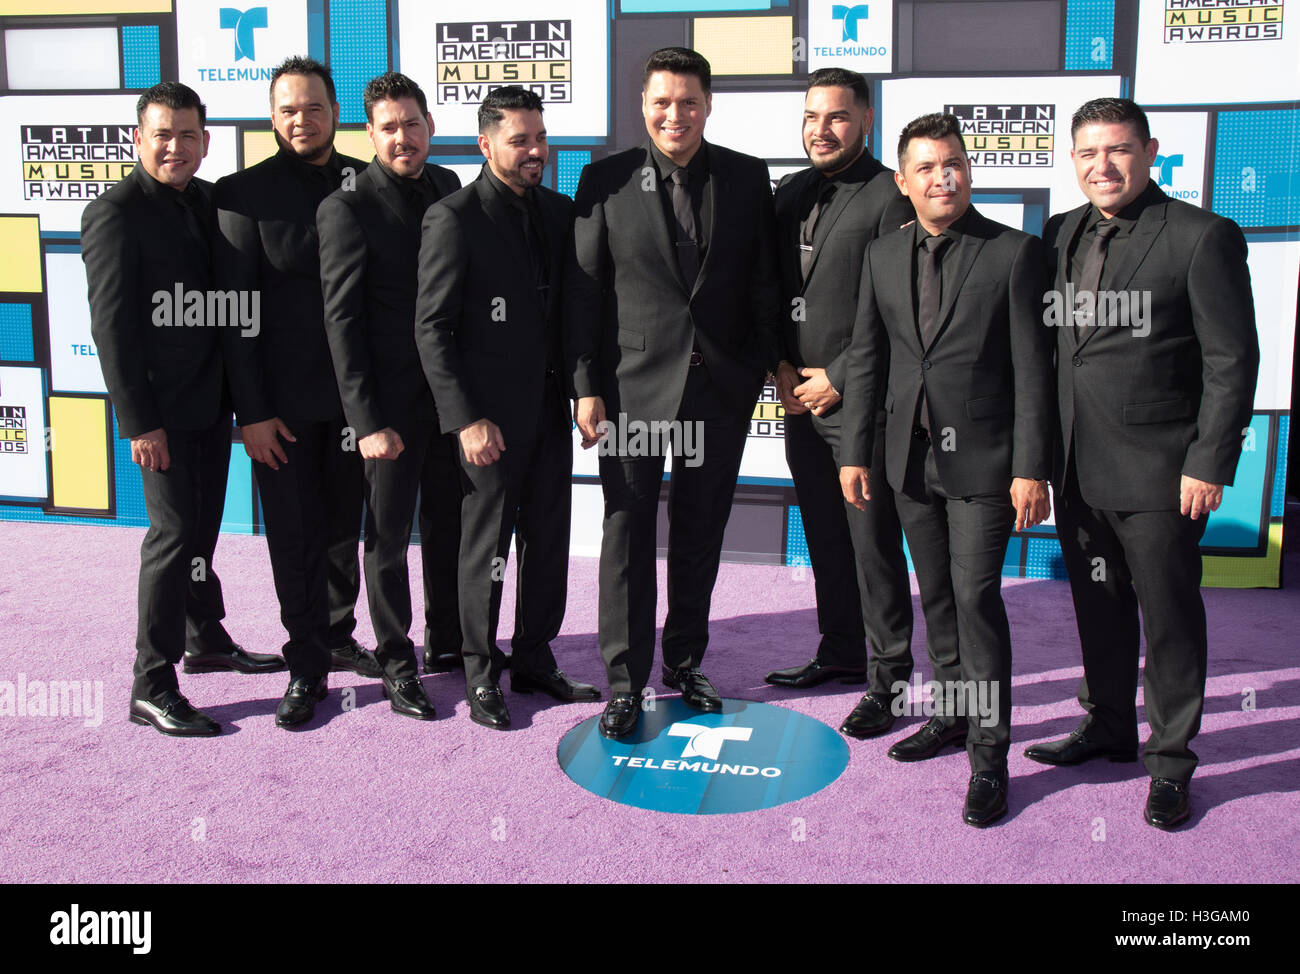 Hollywood, California, USA. 6th Oct, 2016. Banda MS attends the 2016 Latin American Music Awards at Dolby Theatre - Stock Image